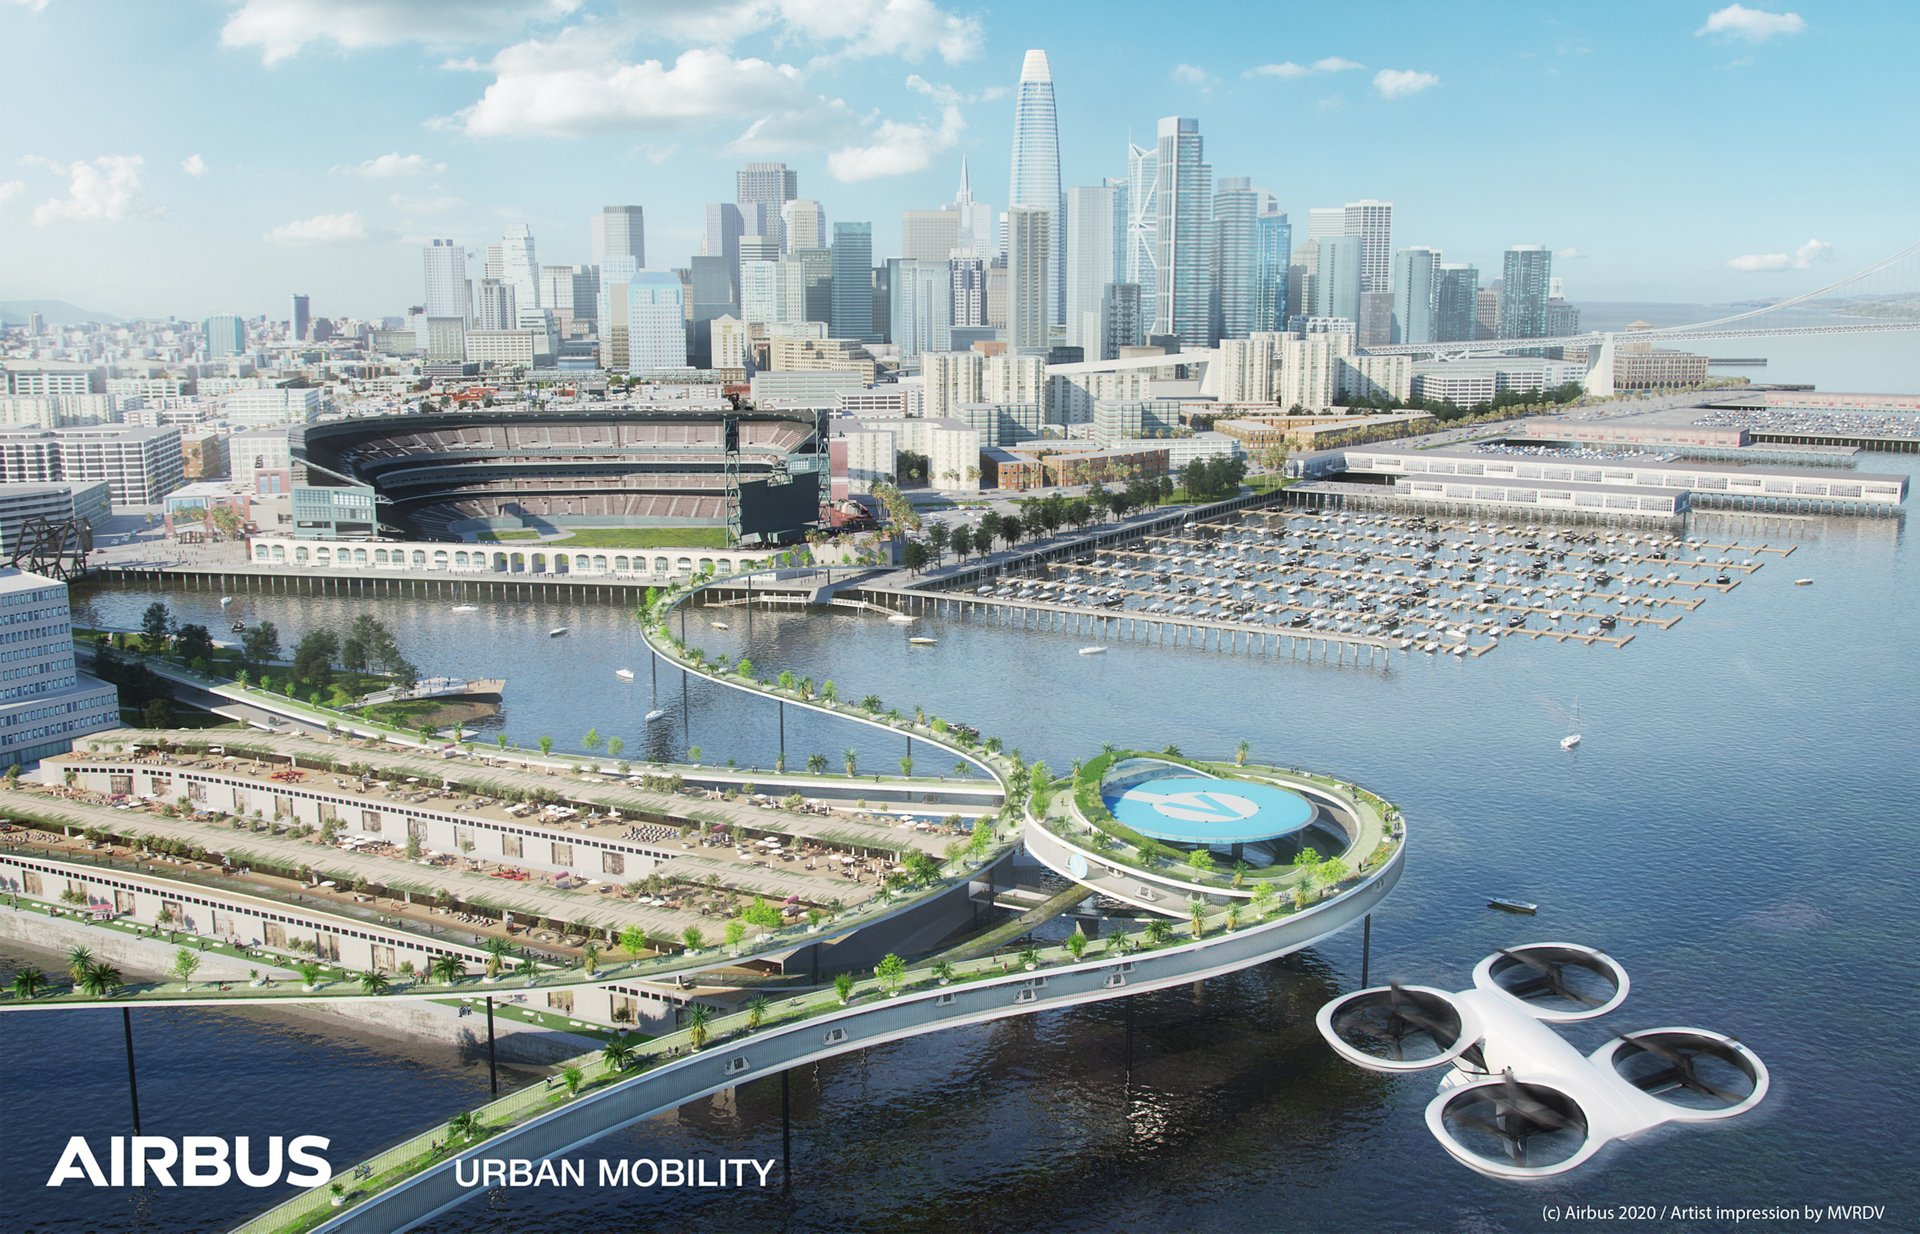 A representation of Airbus' innovative vision for urban air mobility in context of a large city and port area.